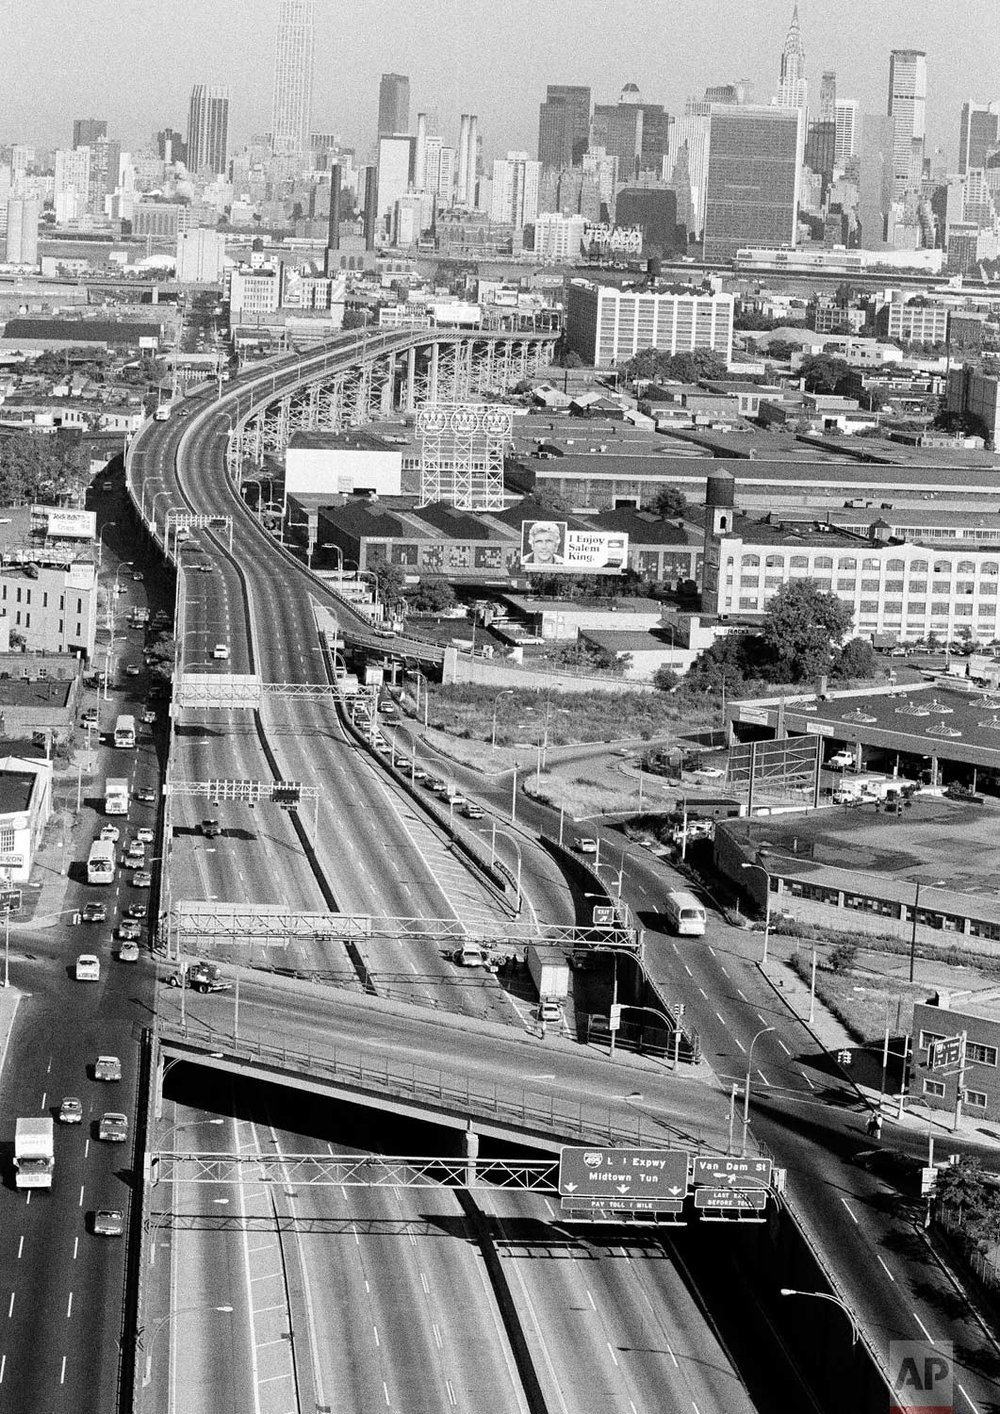 This is an aerial view from New York's borough of Queens, looking toward midtown Manhattan, showing a virtually deserted Long Island Expressway and entrance to the Midtown Tunnel, July 14, 1977, in the wake of last night's massive power failure. Tunnels to Manhattan were closed because ventilation fans were inoperable without electric power. (AP Photo/Dave Pickoff)